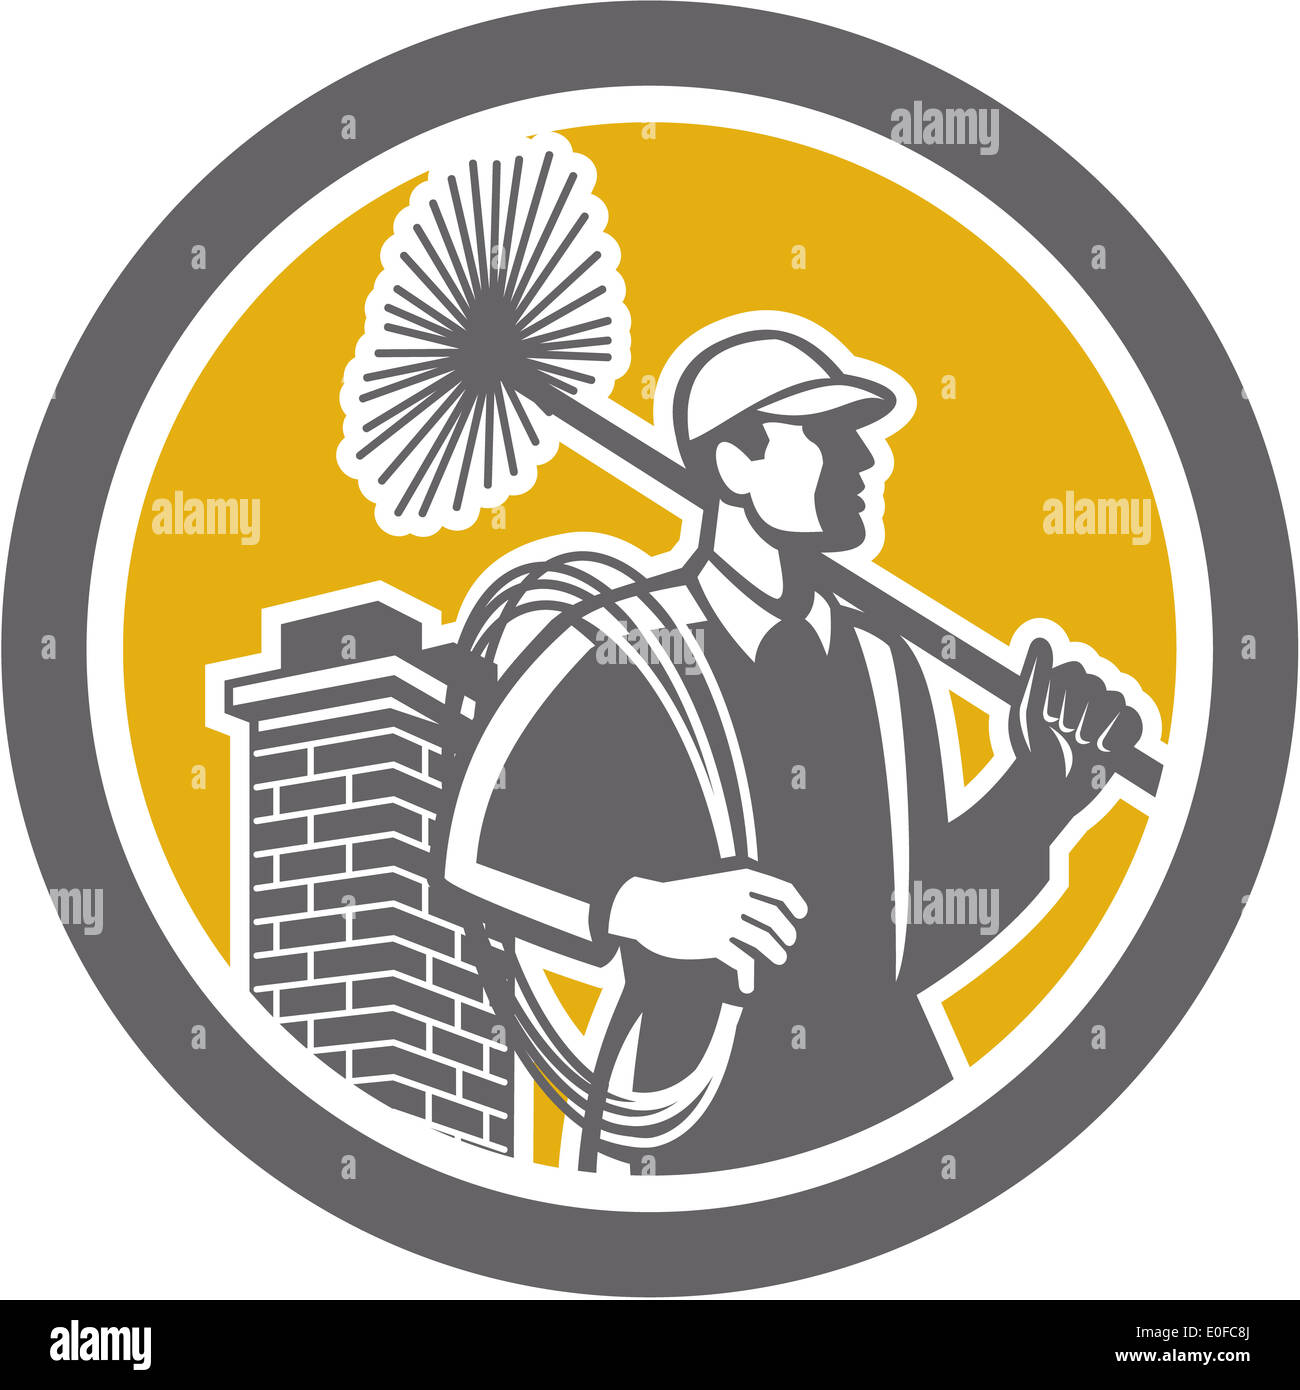 Illustration Of A Chimney Sweep Holding Sweeper And Rope Viewed From Side Set Inside Circle On